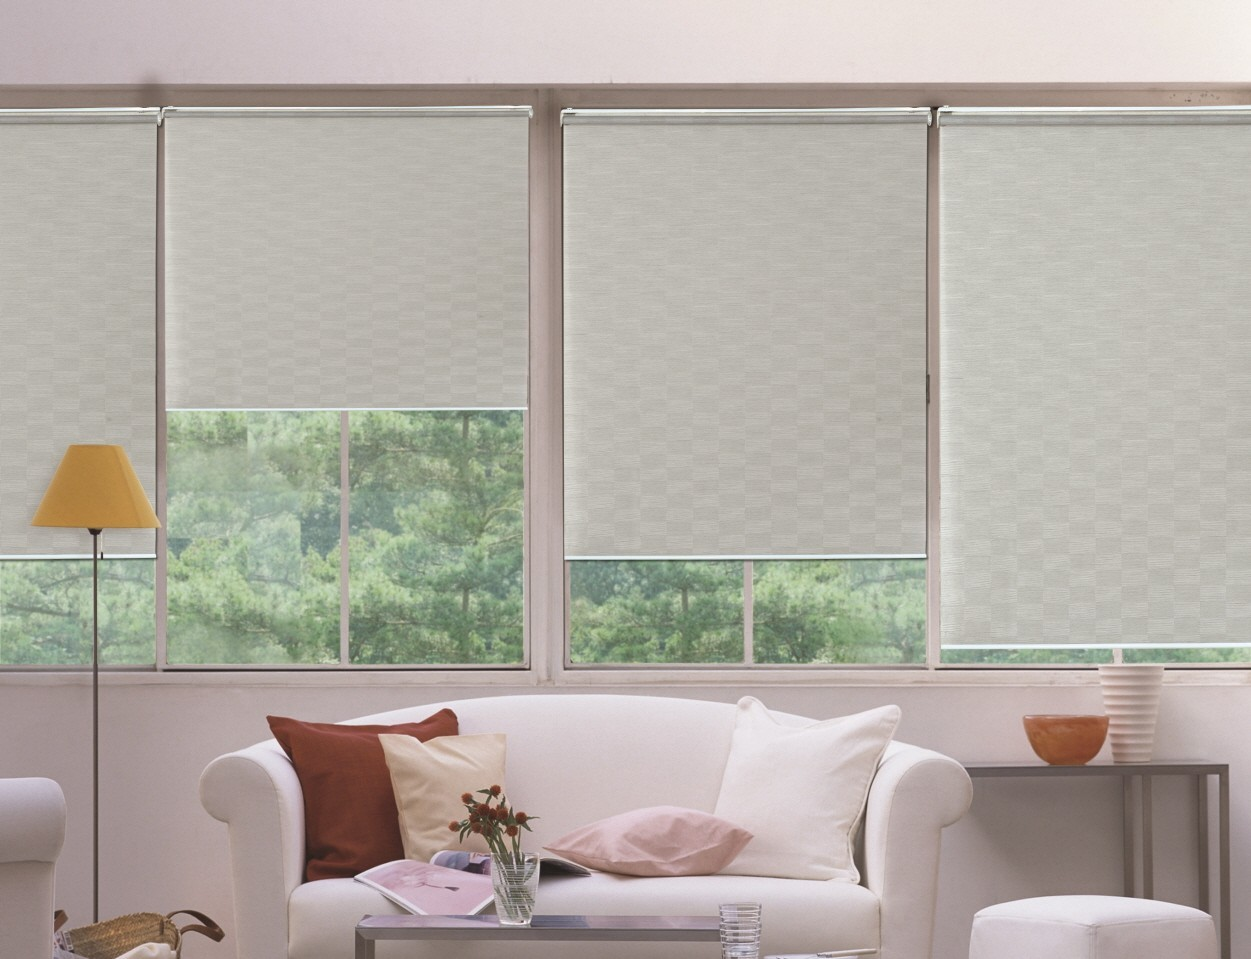 burris window shades | shade2. ACPDAIO